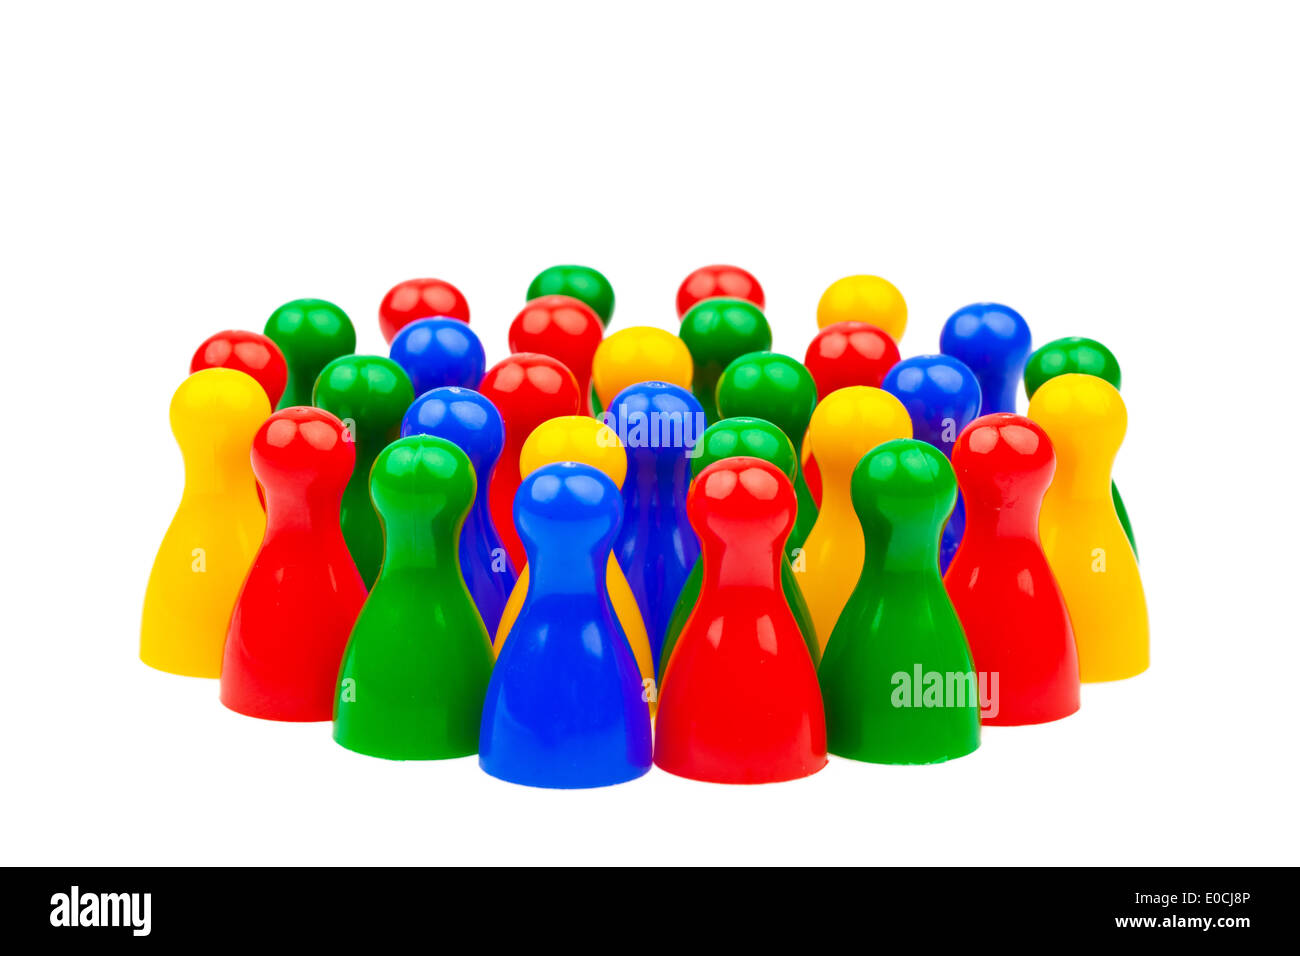 Integration by cooperation in the society. Equal rights - Stock Image